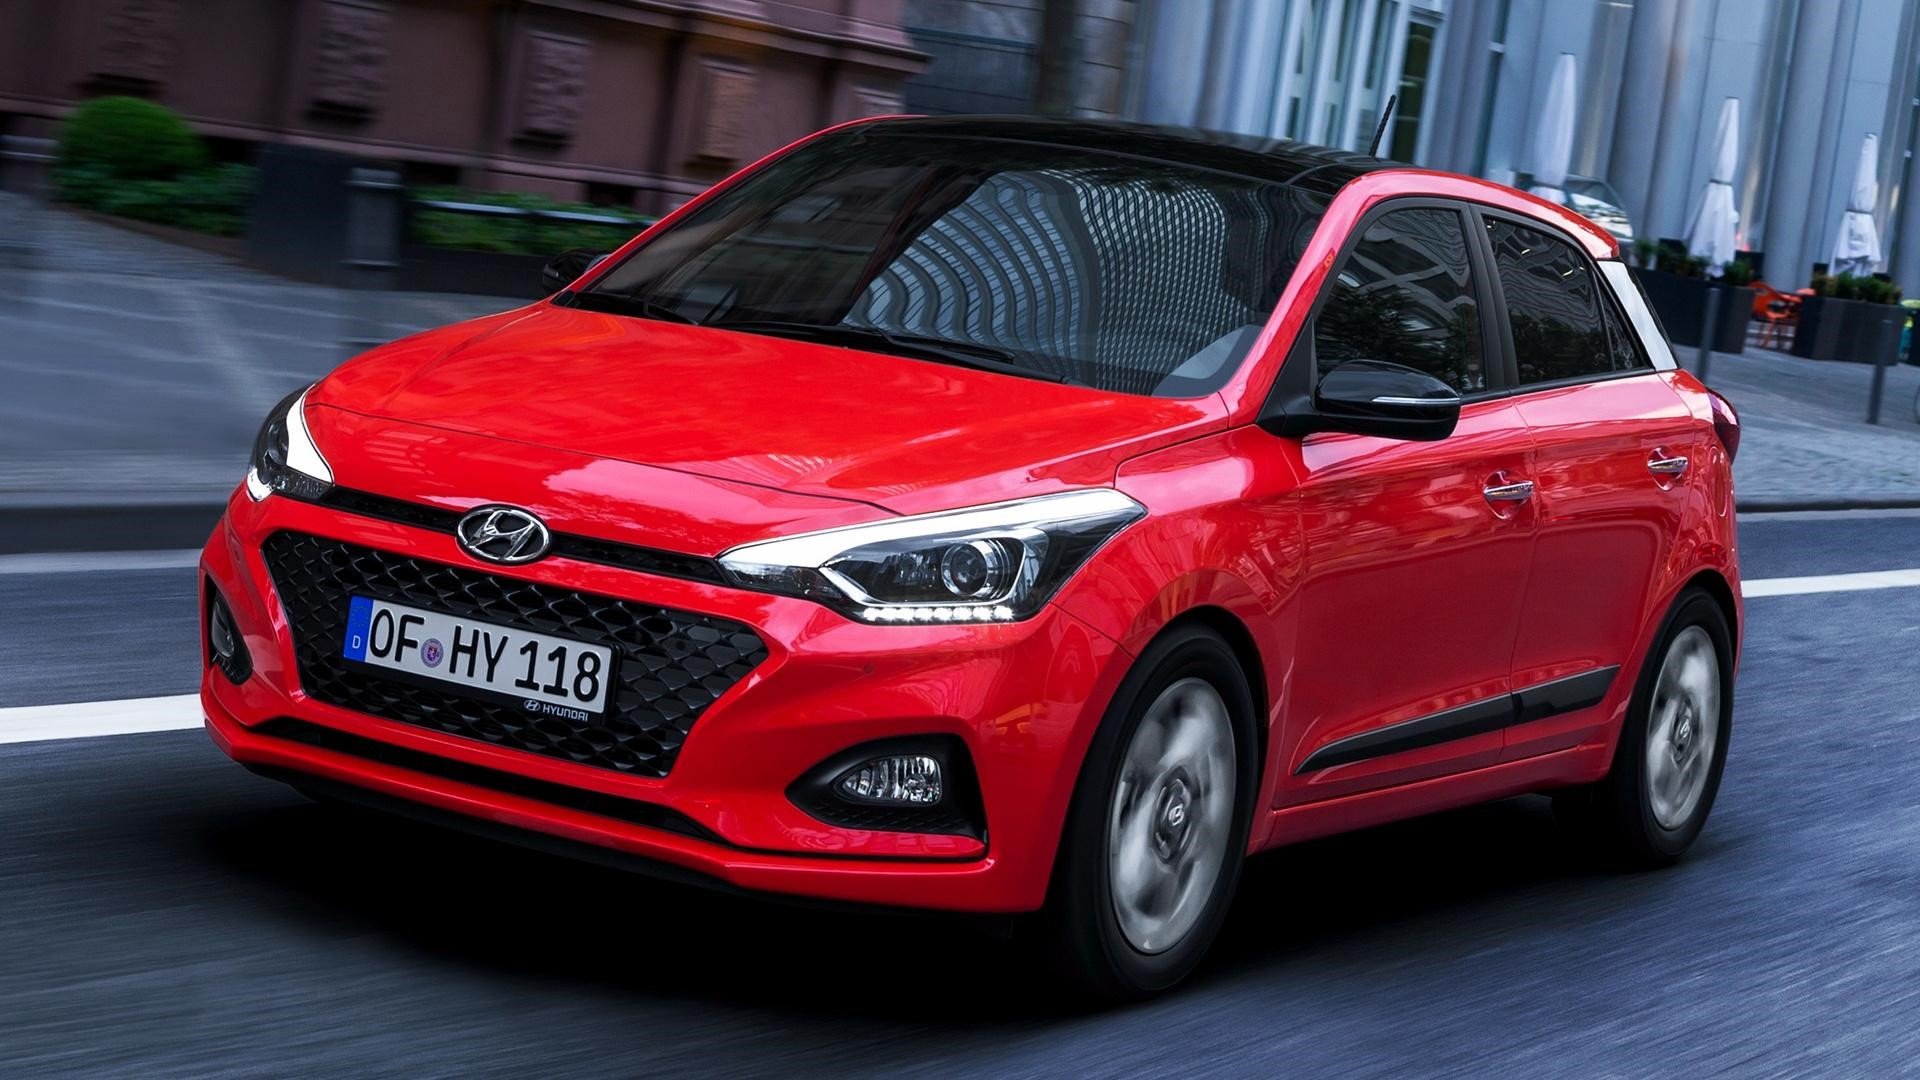 Pictures of Hyundai i20